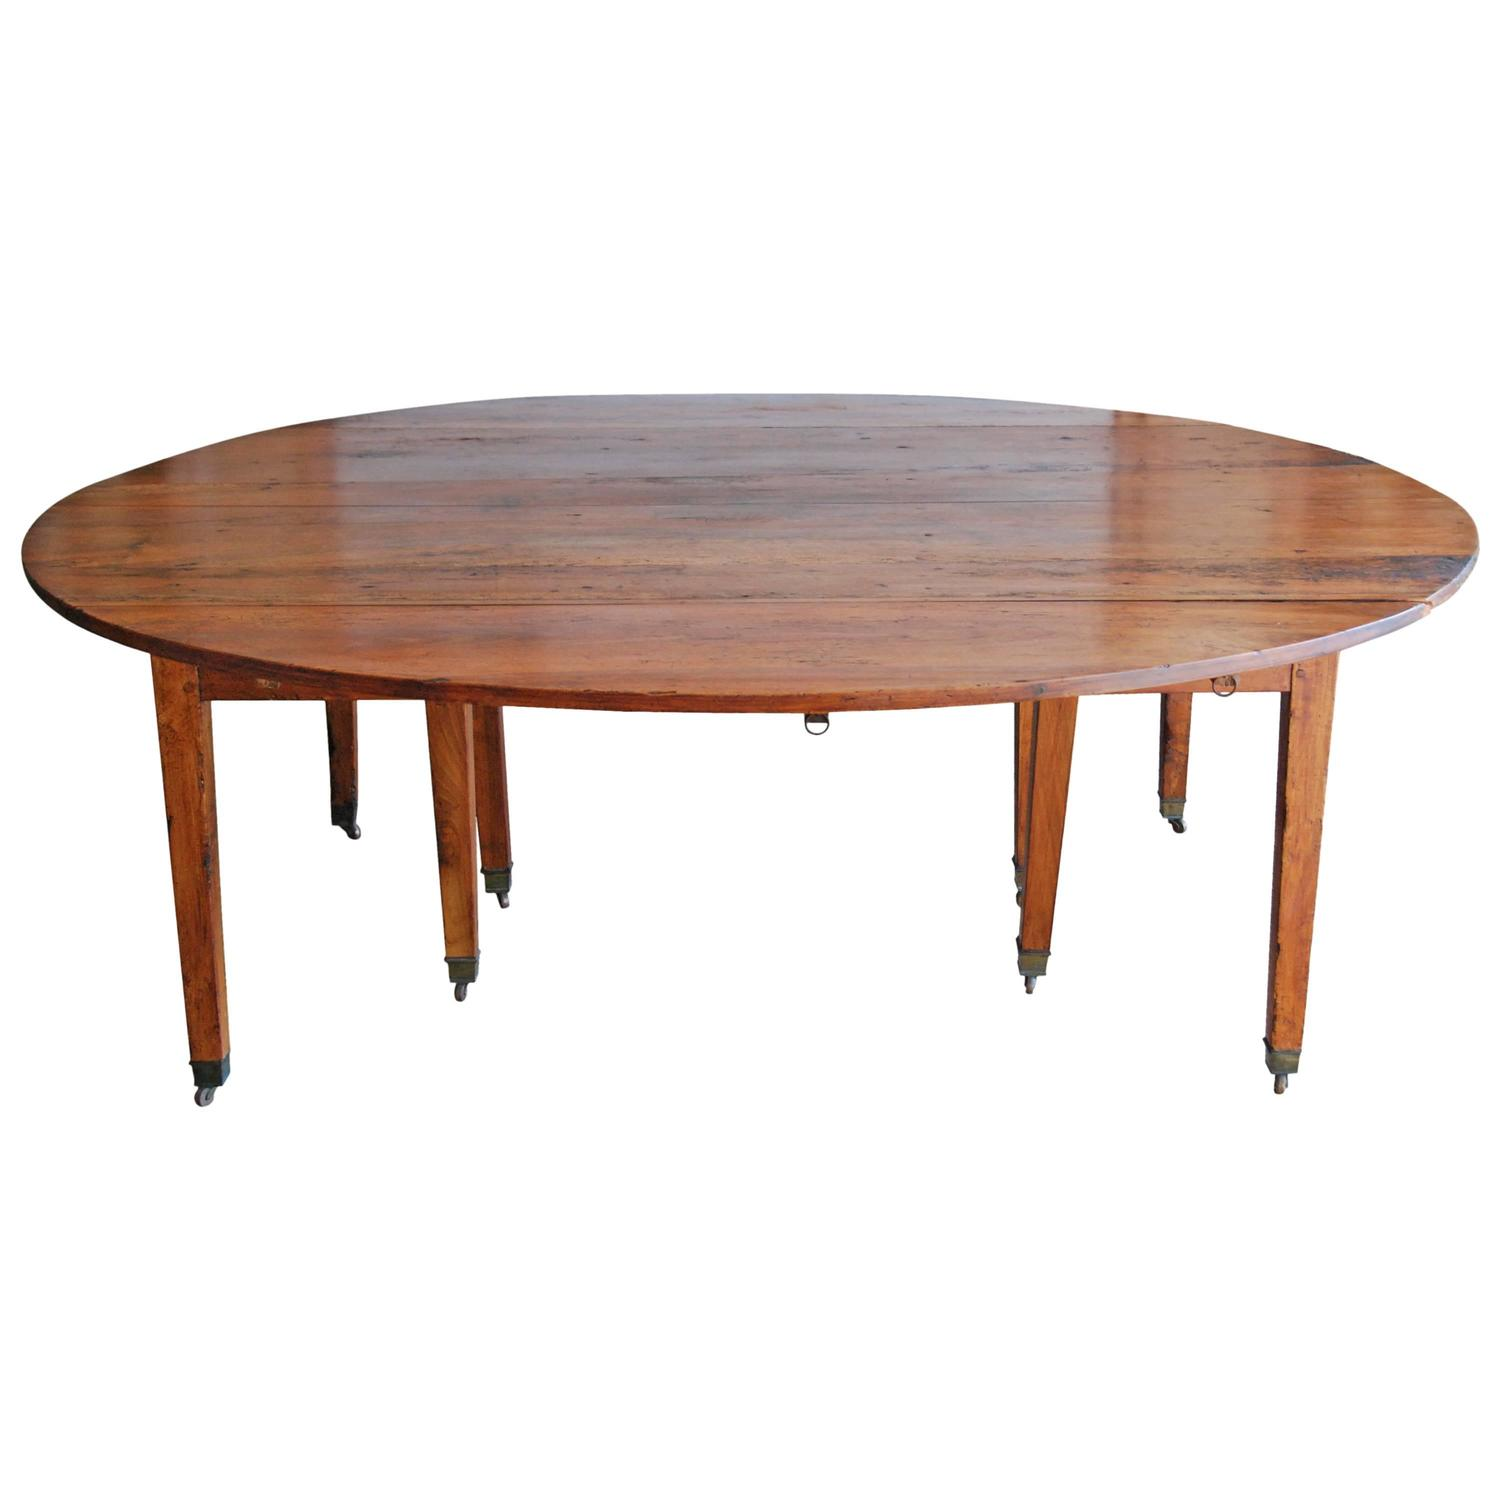 16 Seater Dining Table 19th Century French Walnut Large Dining Table Seats 16